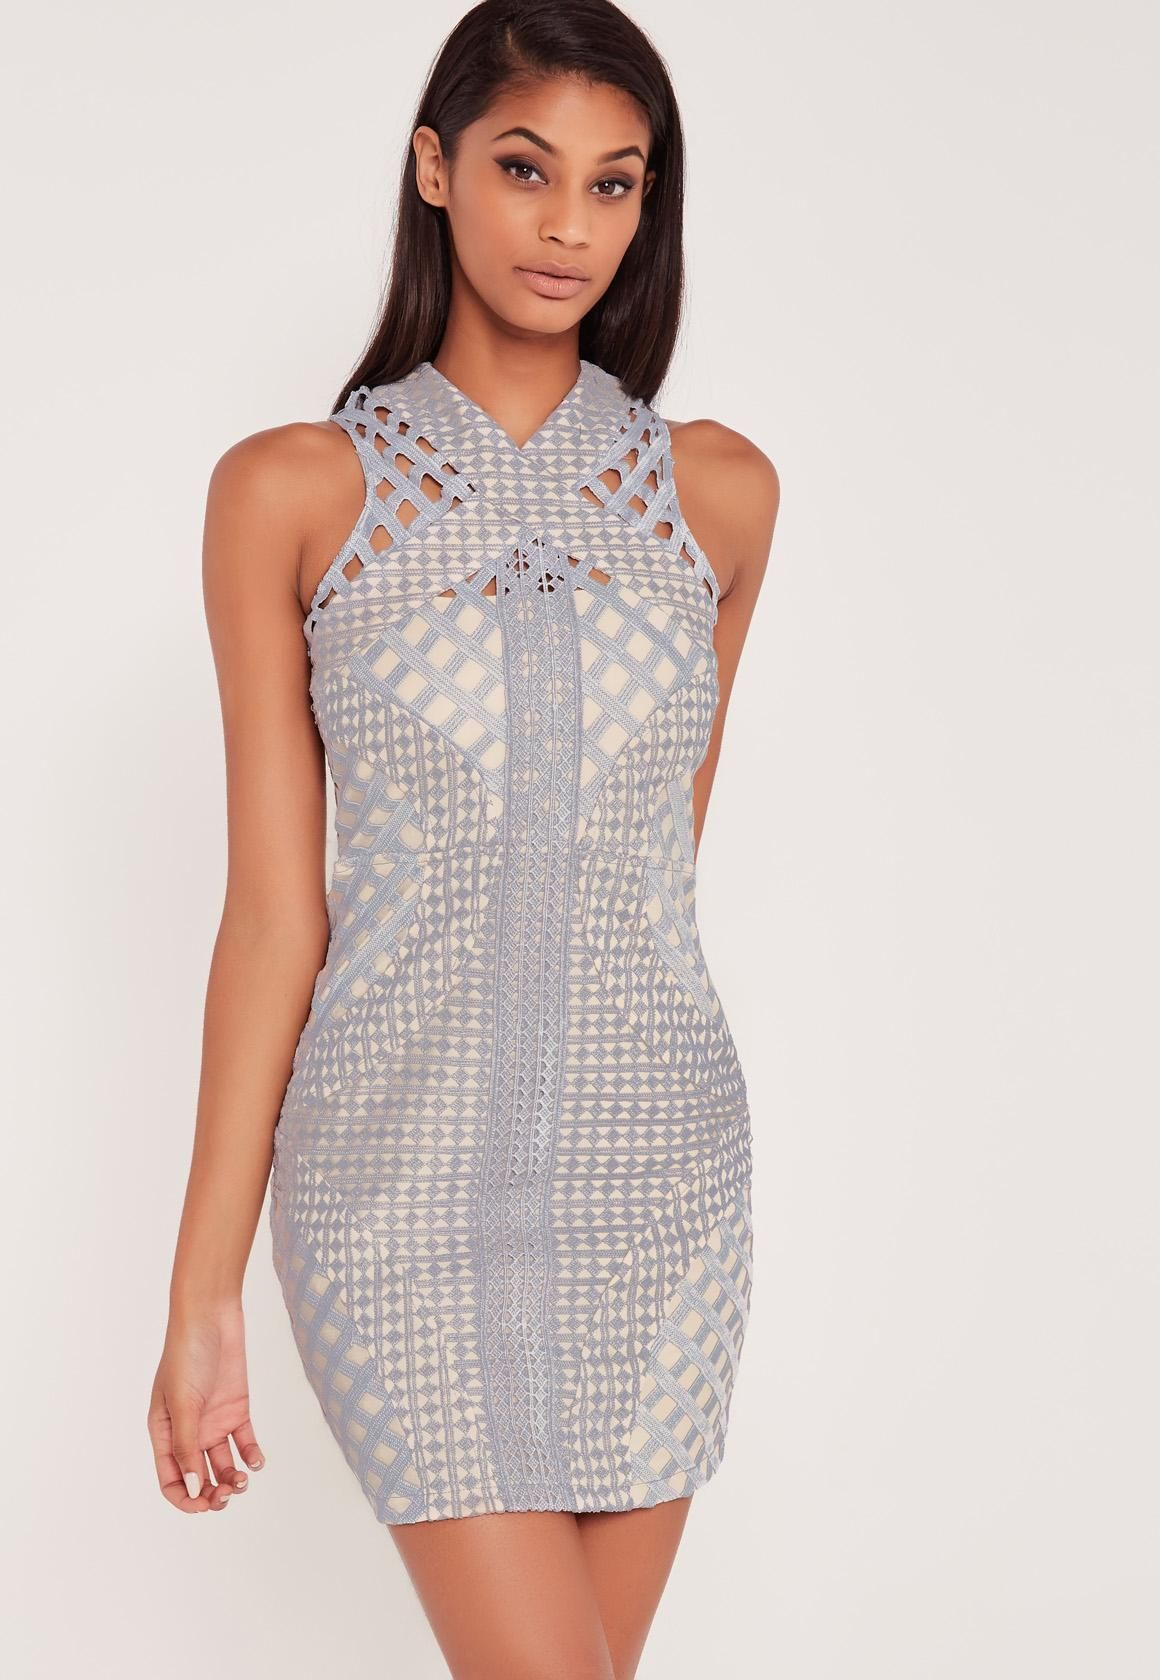 aefb63375483 Missguided - Carli Bybel Lace Cut Out Cross Neck Bodycon Dress Grey ...